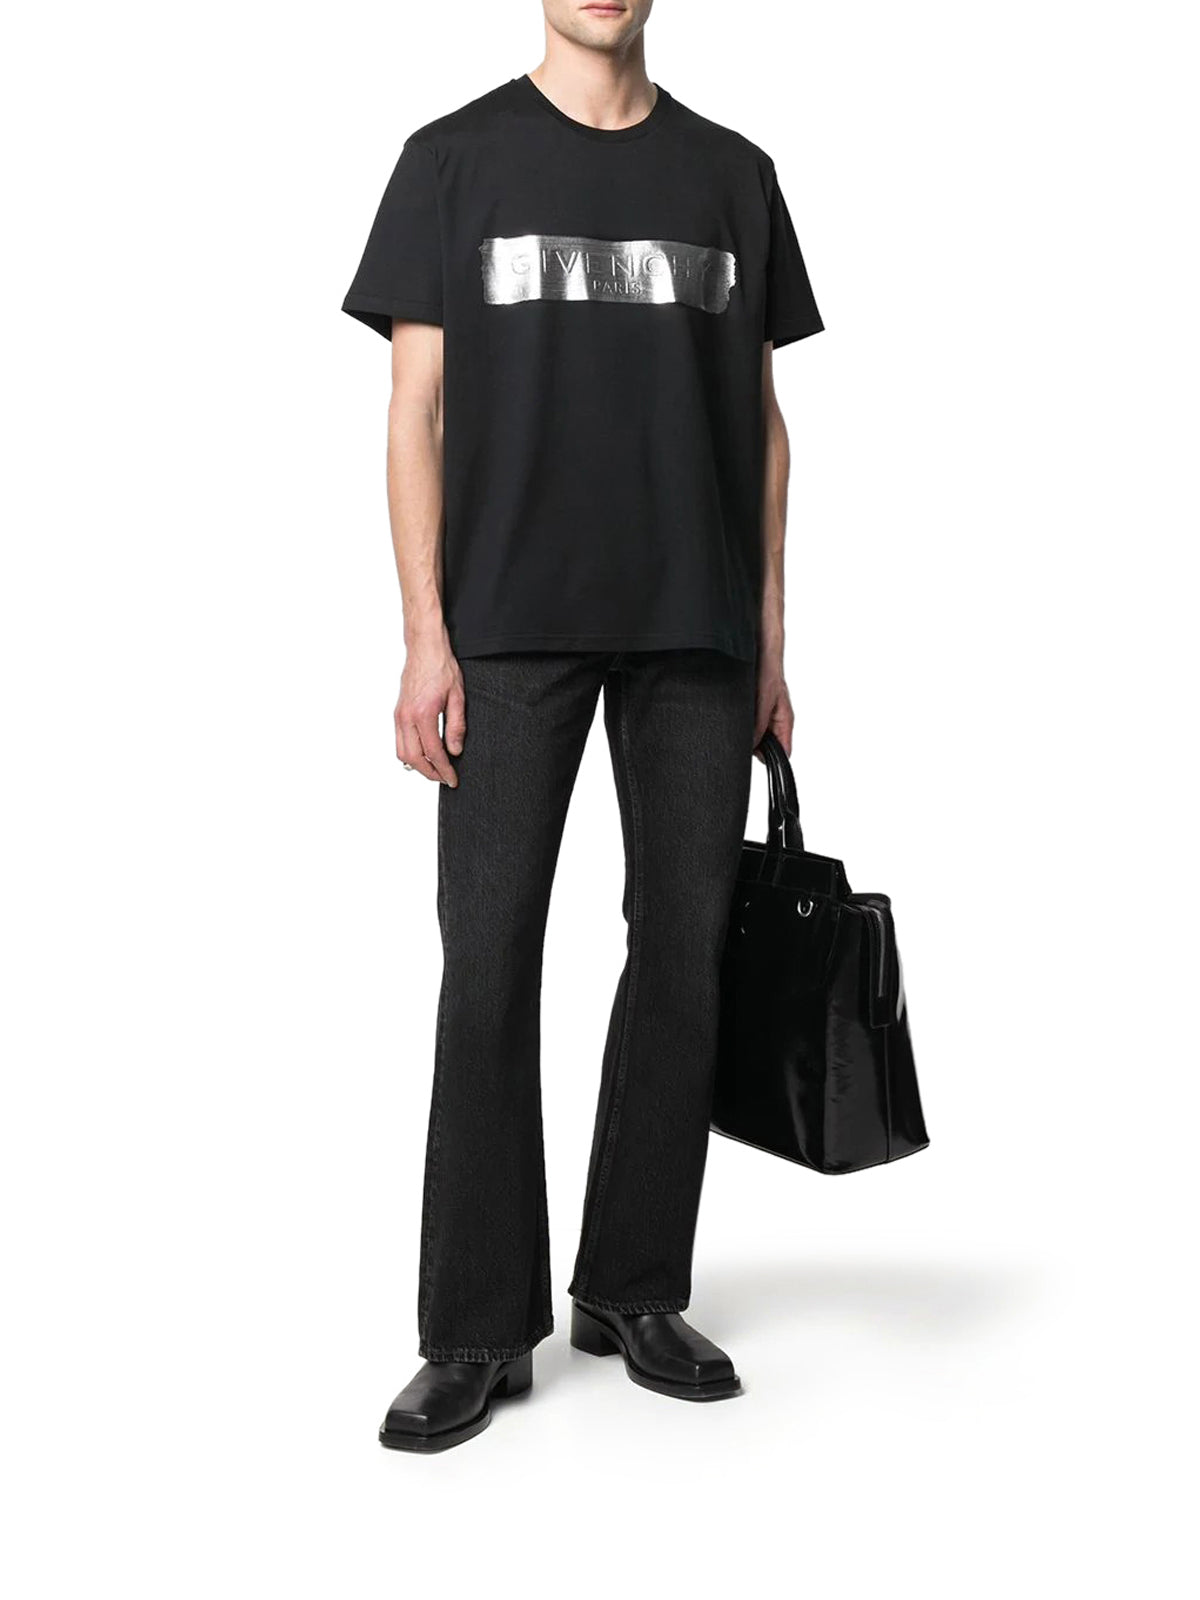 GIVENCHY LOGO-PRINT SHORT-SLEEVE T-SHIRT